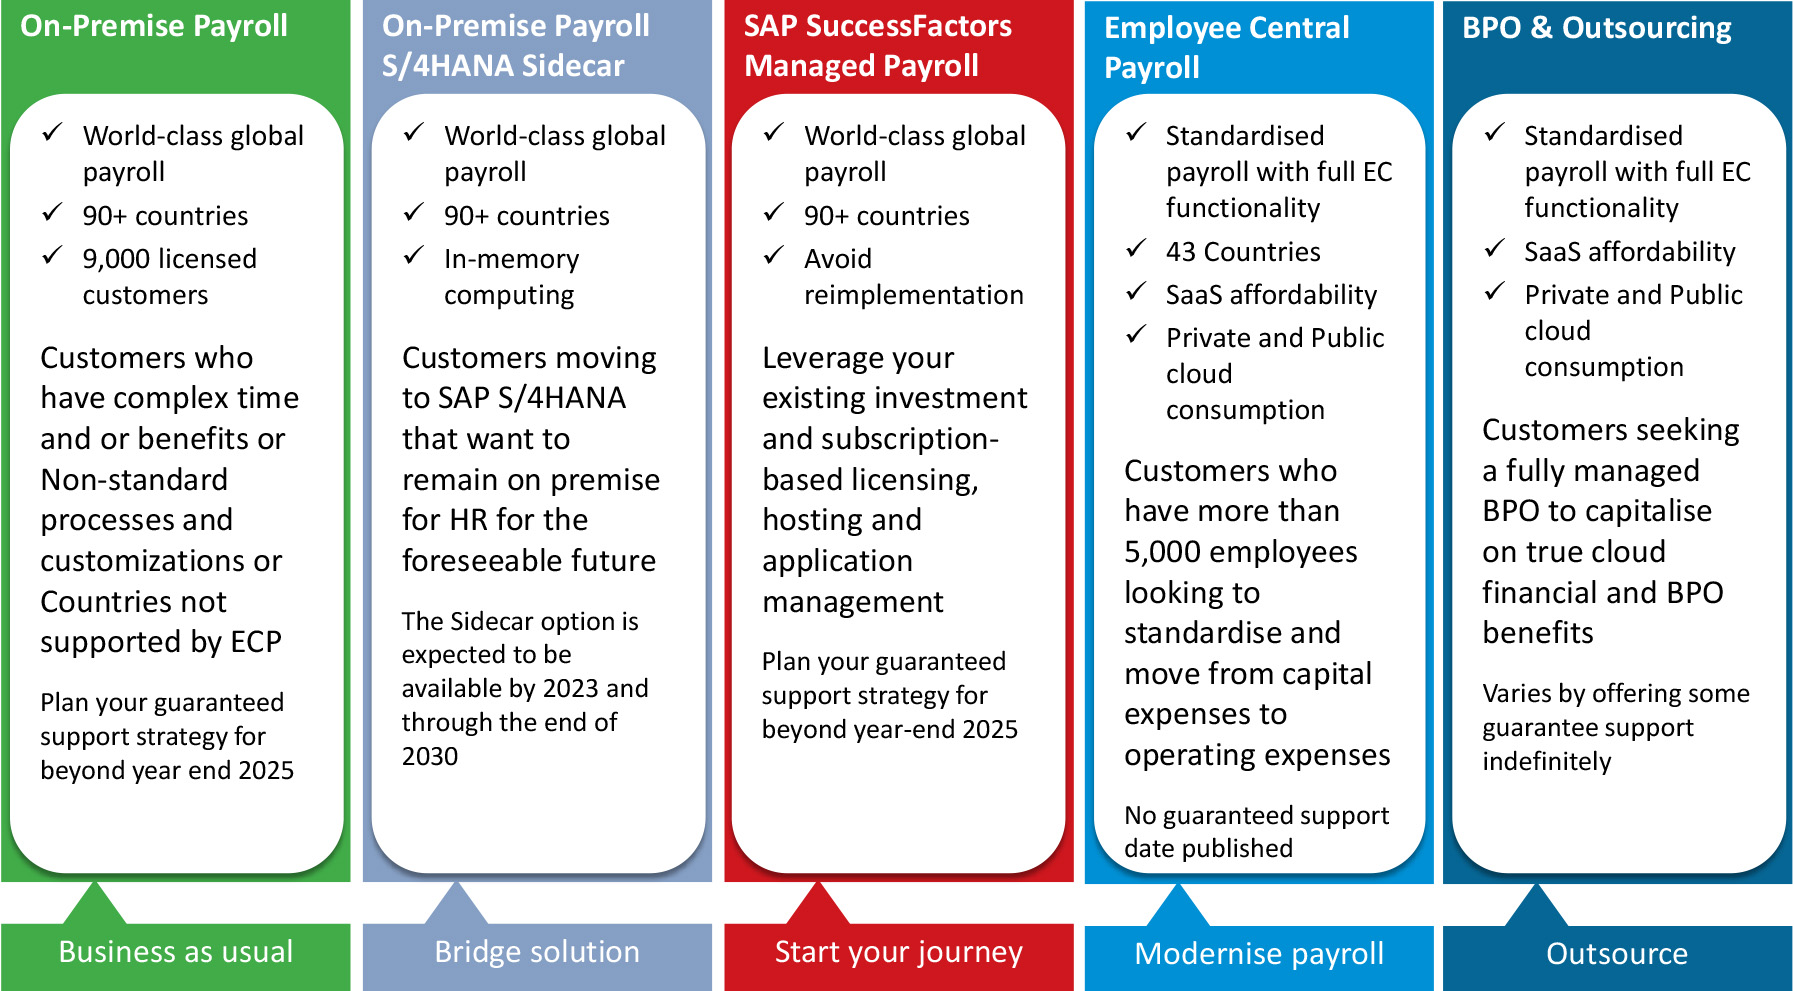 Options for Futrure Payroll Needs